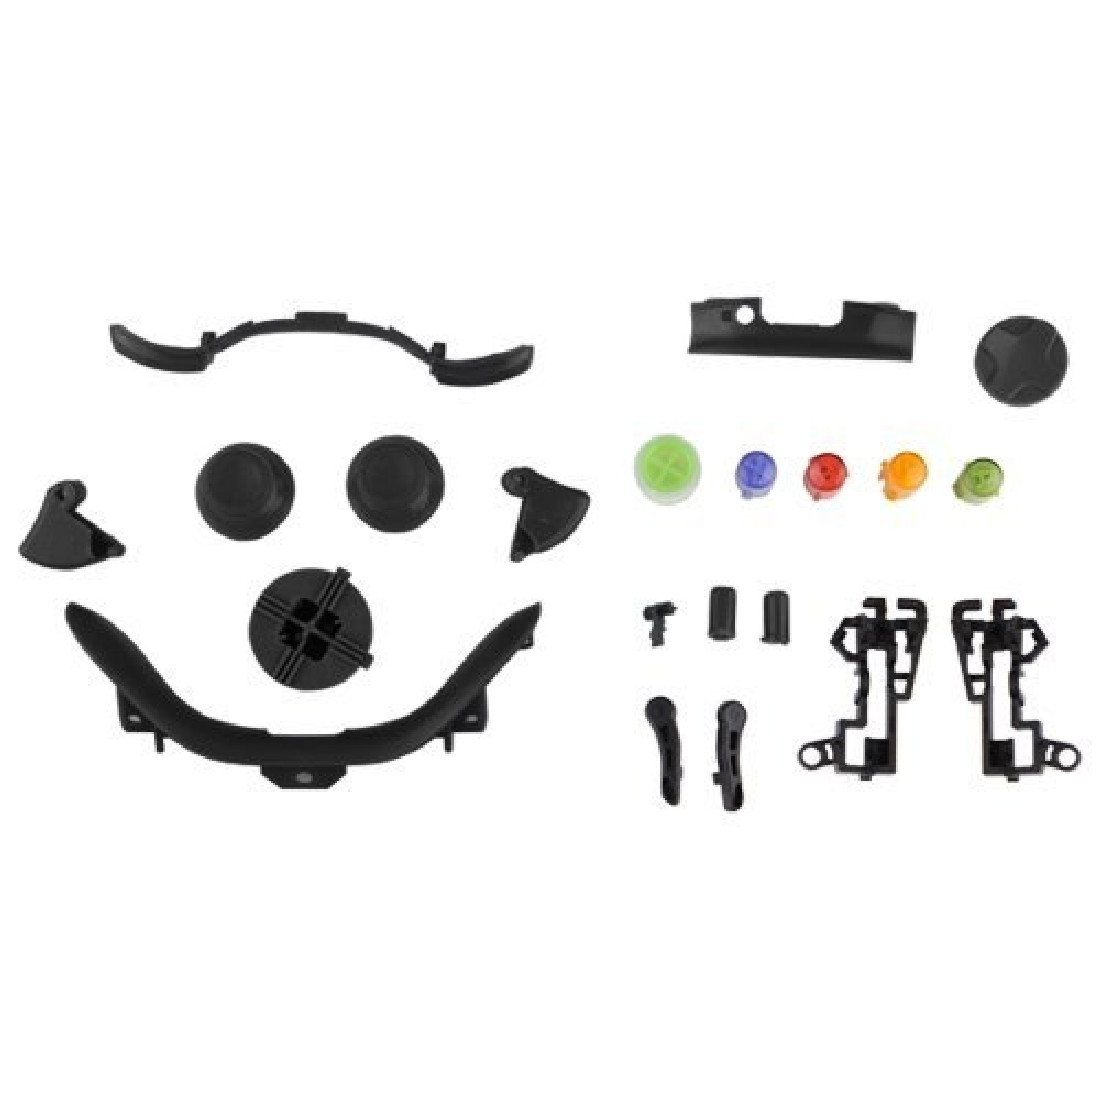 New Replaceable Full Sets Of Buttons Buttons Accessories Kits For Xbox360 Game Console Controller(China (Mainland))